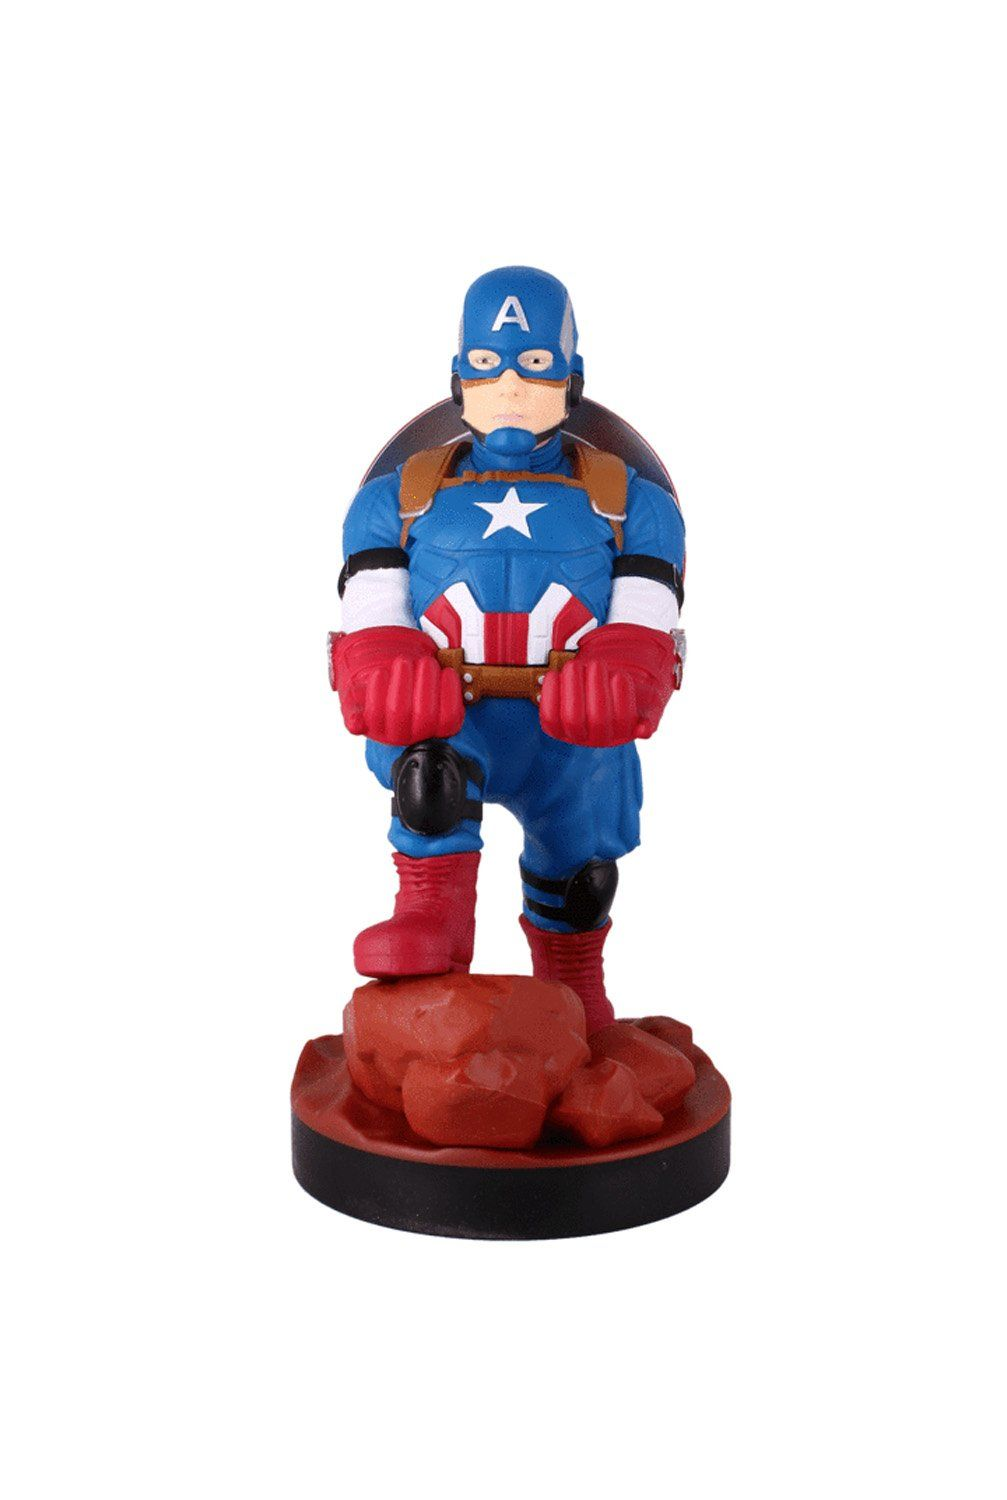 Captain America - Cable Guy